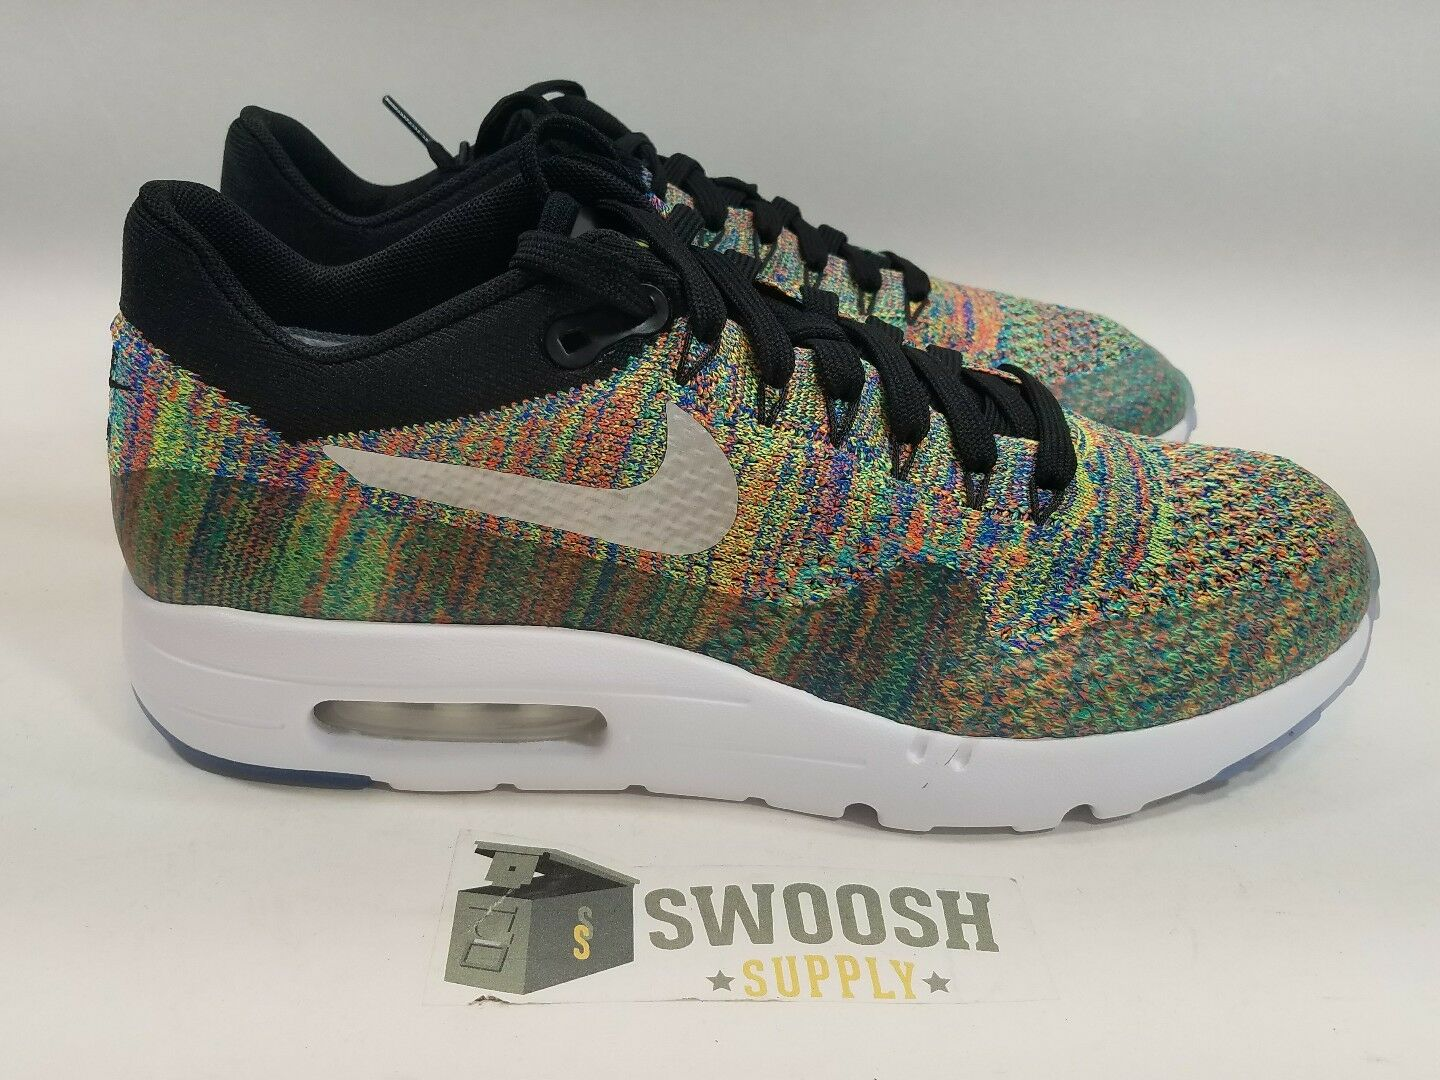 Nike Air Max 1 Ultra Flyknit Premium Multicolor Air Max Day iD sz 13 940379-991